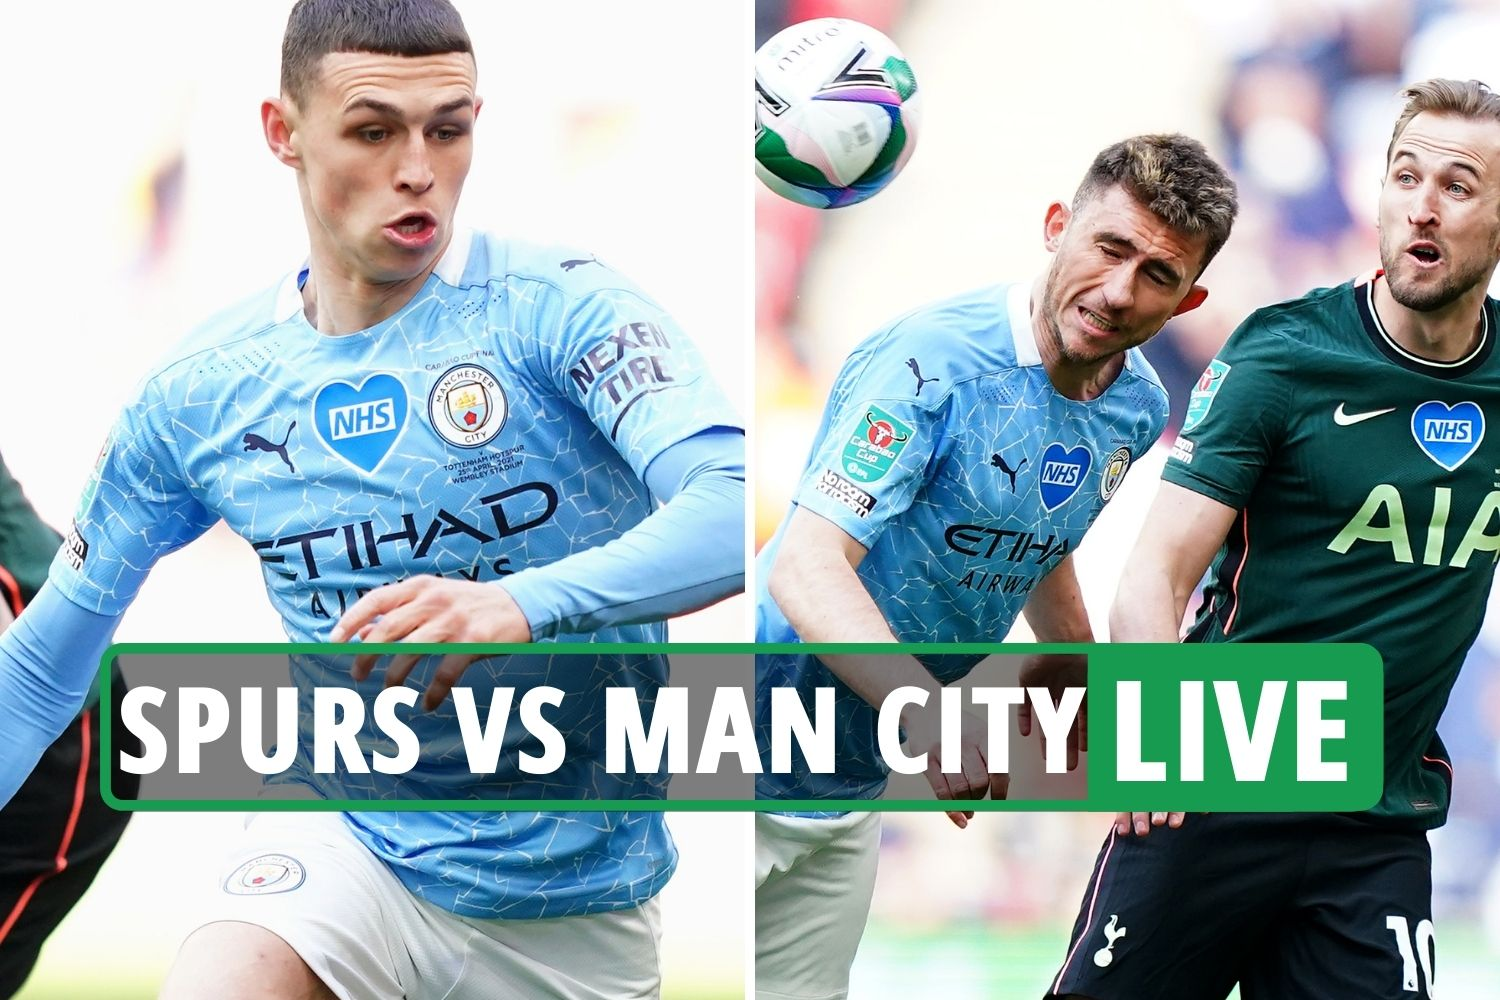 Tottenham Vs Man City Carabao Cup Final Live Stream Tv Channel As Laporte Nets Crucial Late Header Latest 247 News Around The World